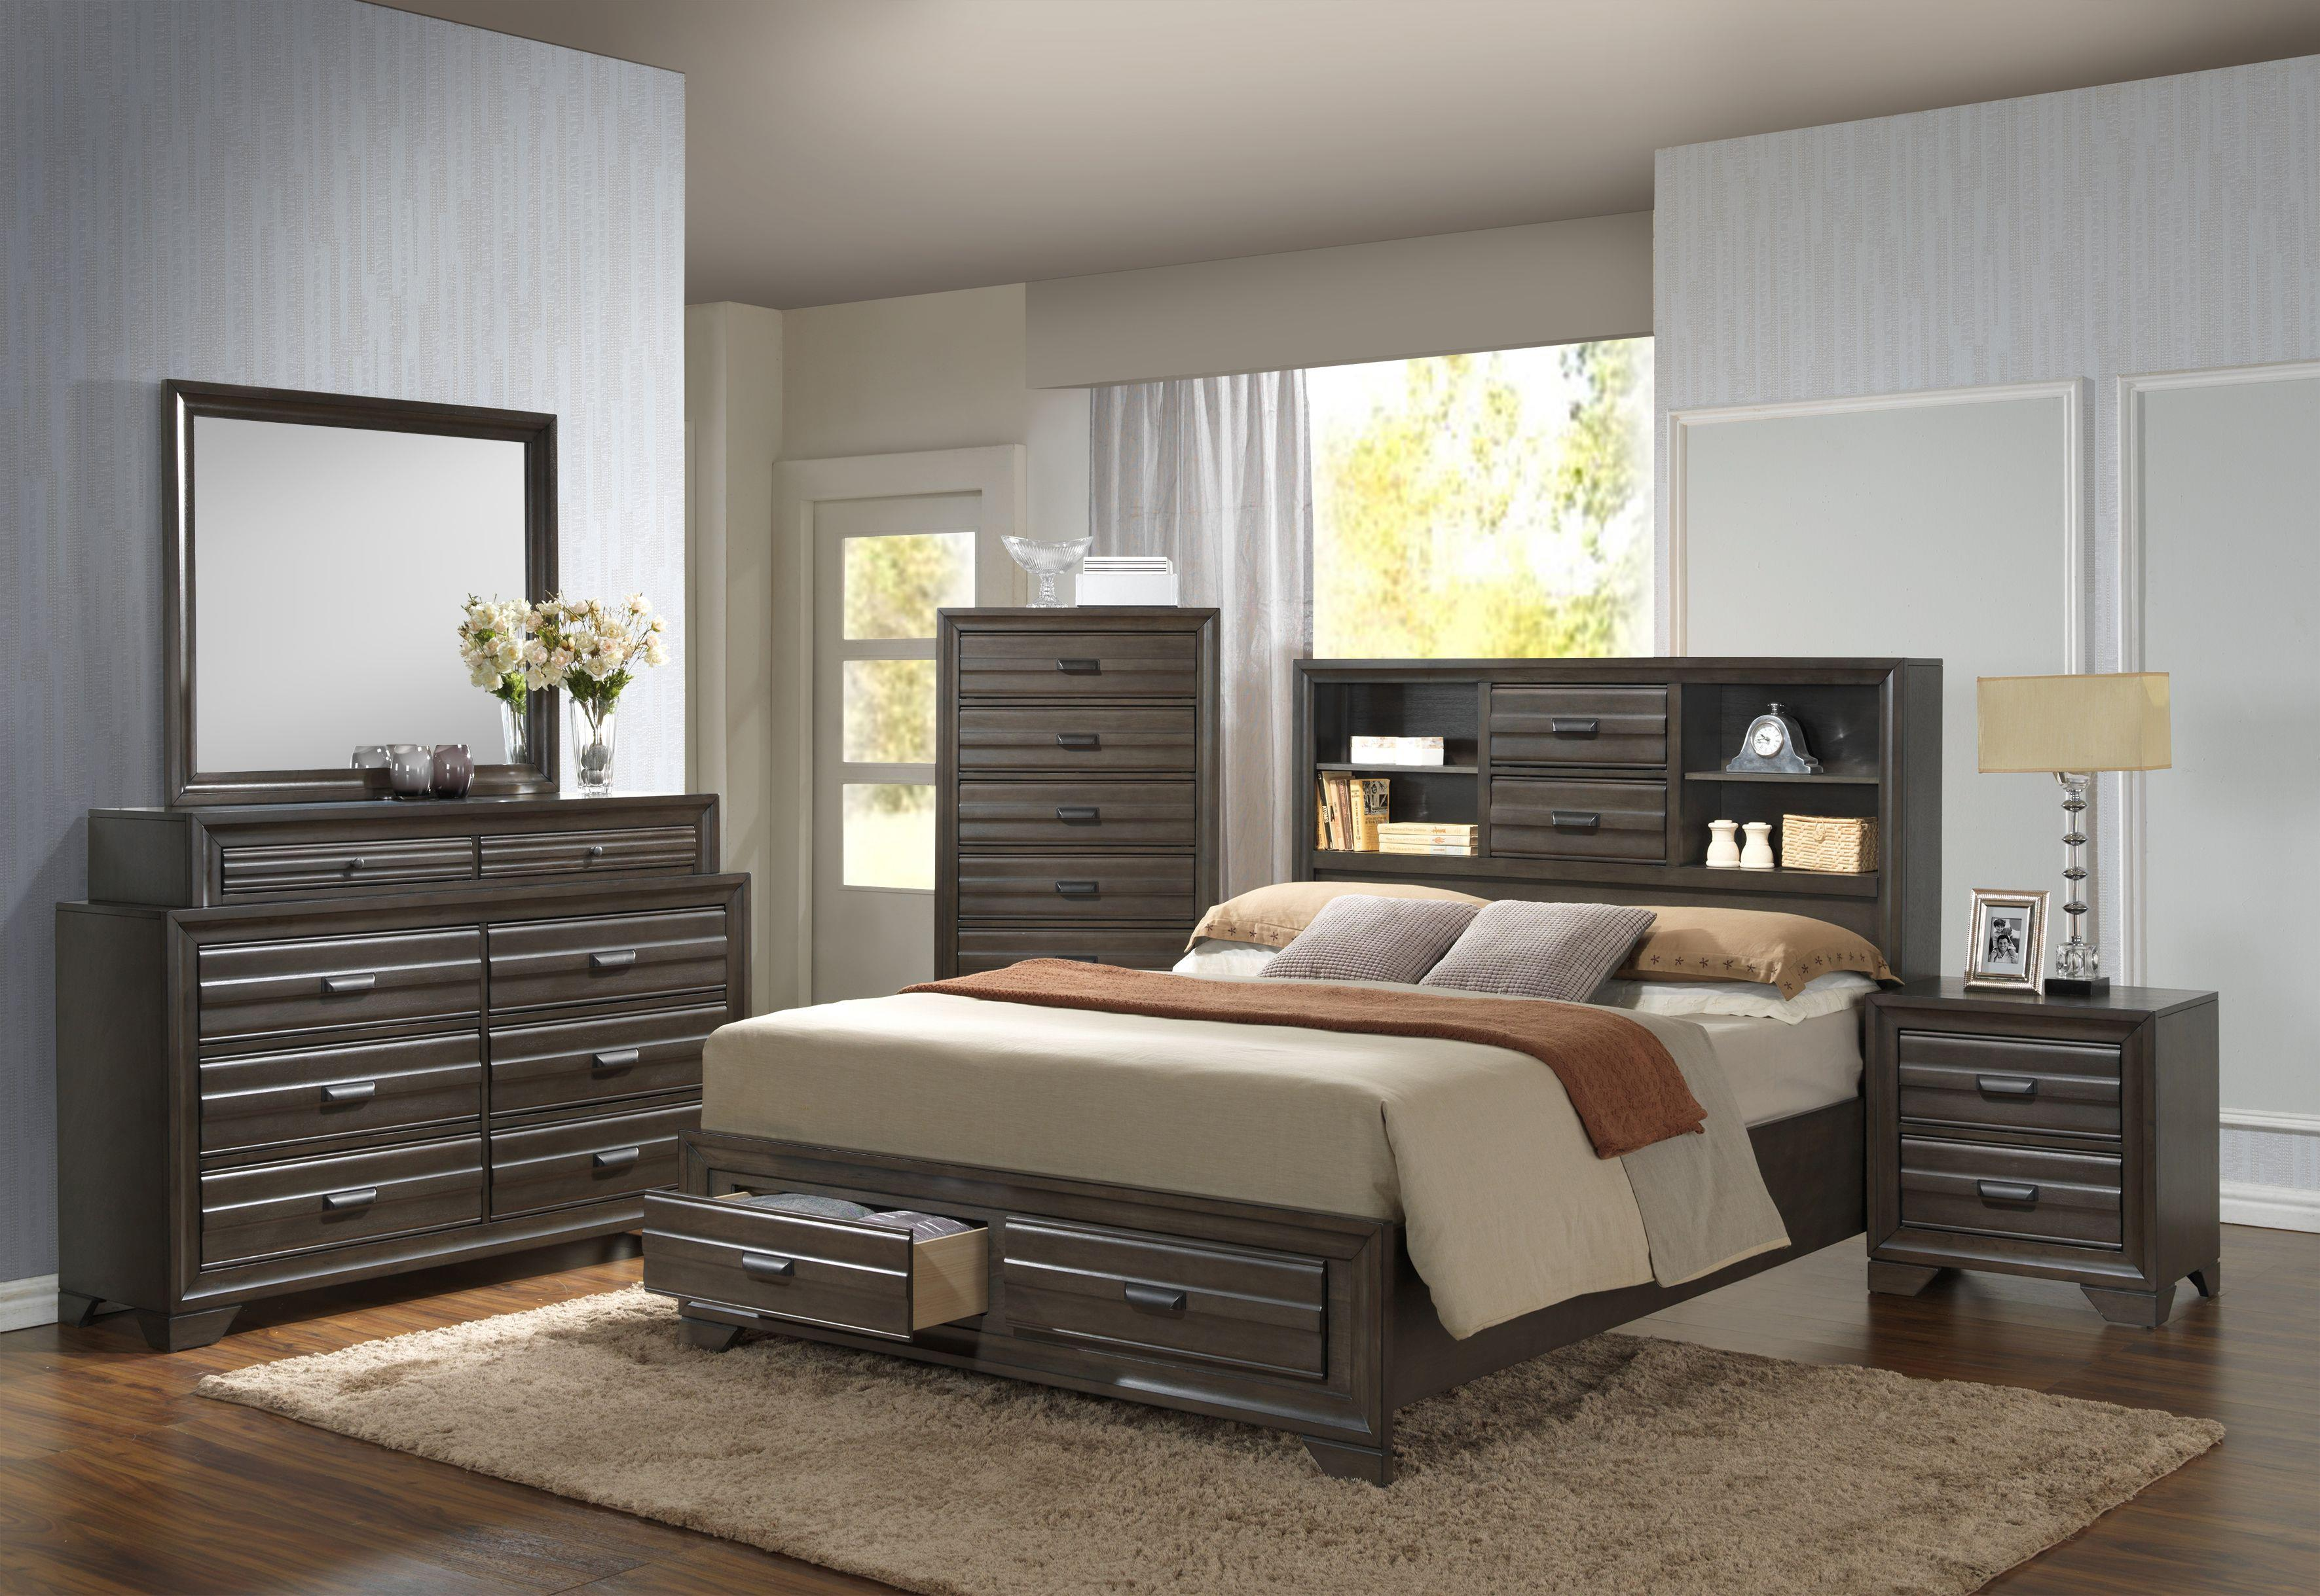 5236A King Bedroom Group by Lifestyle at Beck's Furniture